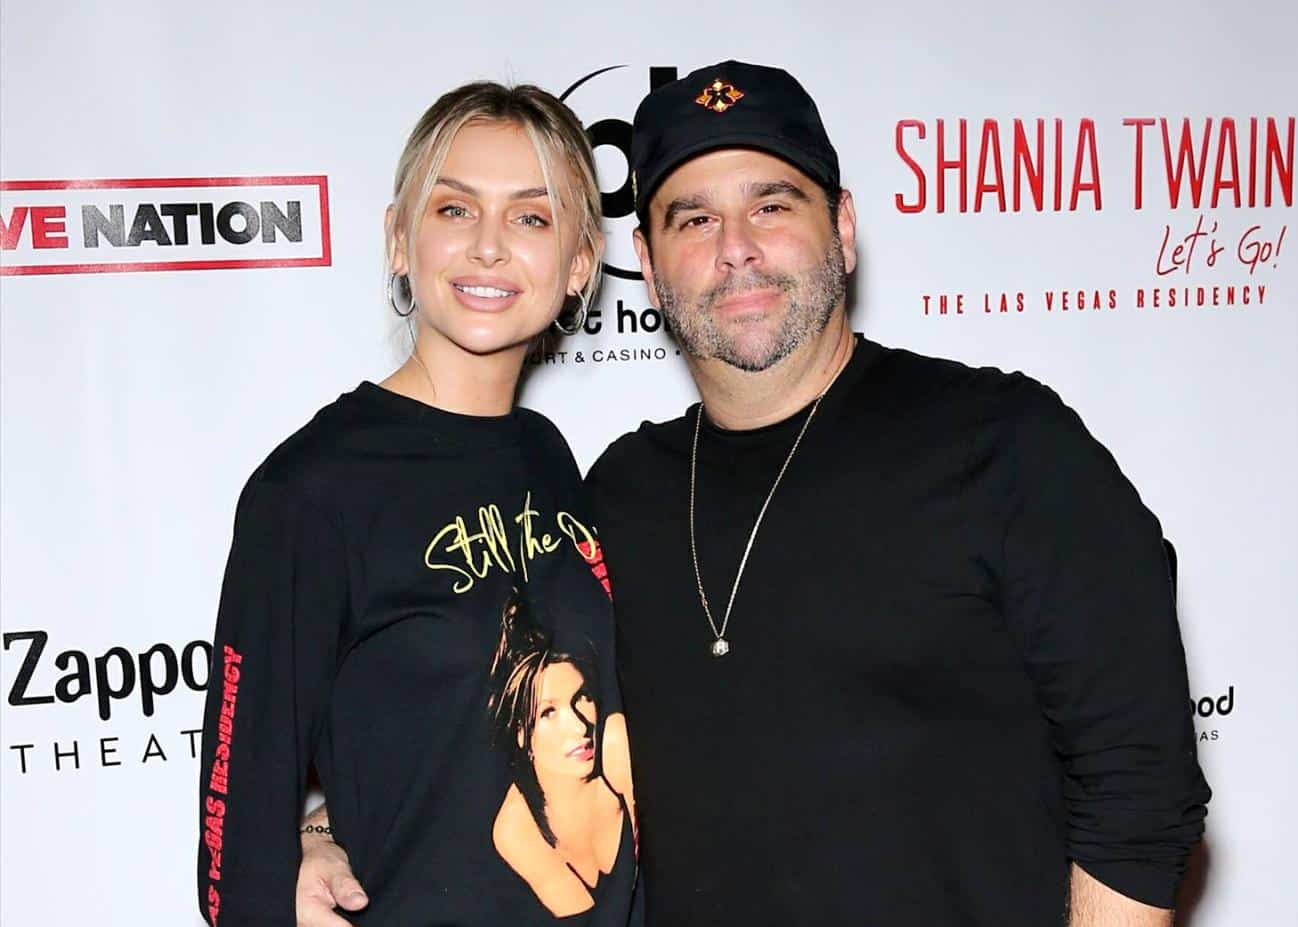 Vanderpump Rules' Lala Kent Reveals the Foul Thing She Did to Randall Emmett's Toothbrush Amid Drunken Fight and Shares Where She Stands With Scheana Shay After Messy Feud